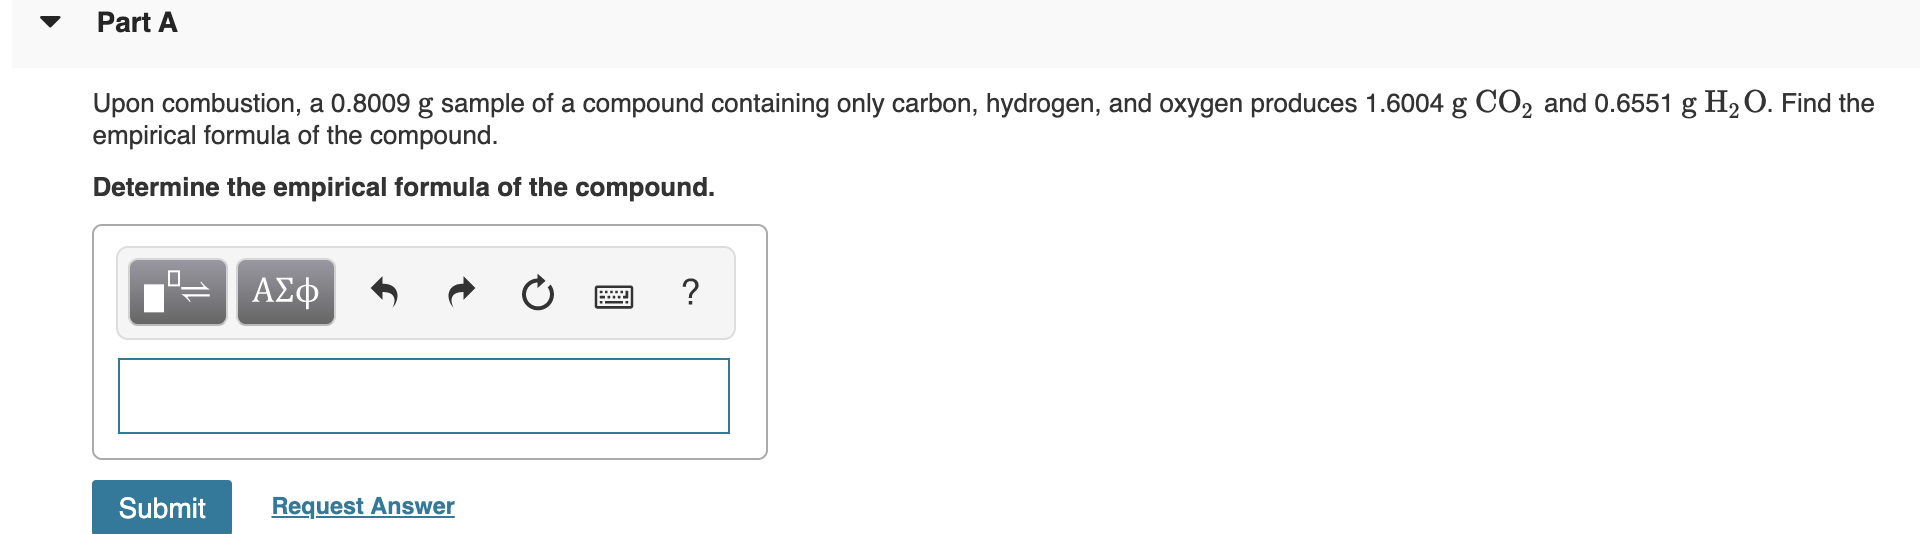 Part A Upon combustion, a 0.8009 g sample of a compound containing only carbon, hydrogen, and oxygen produces 1.6004 g CO2 and 0.6551 g H2 O. Find the empirical formula of the compound. Determine the empirical formula of the compound. ΑΣφ ? Submit Request Answer